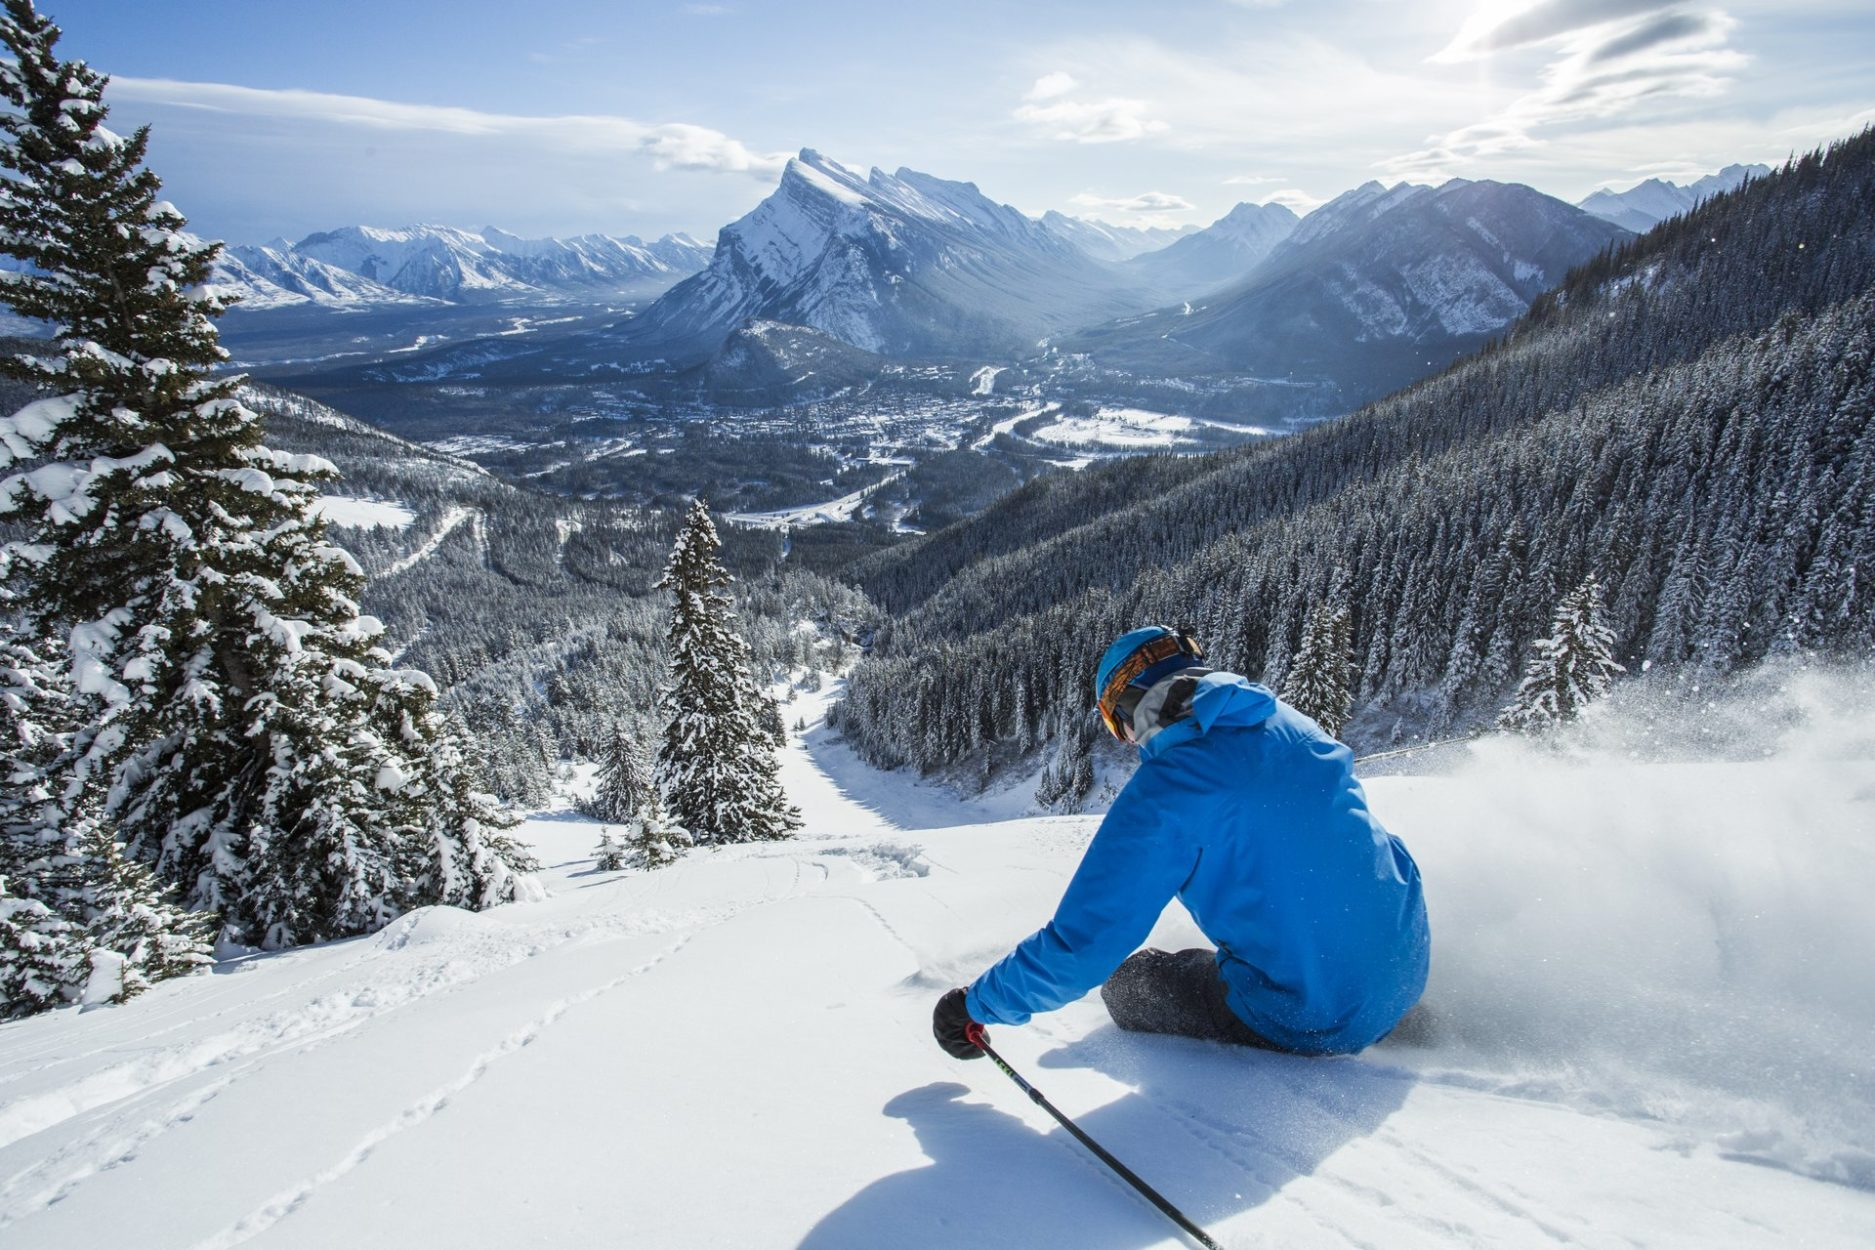 Canadian Rockies Ski Guide: Unleash Your Potential on Where Rockies